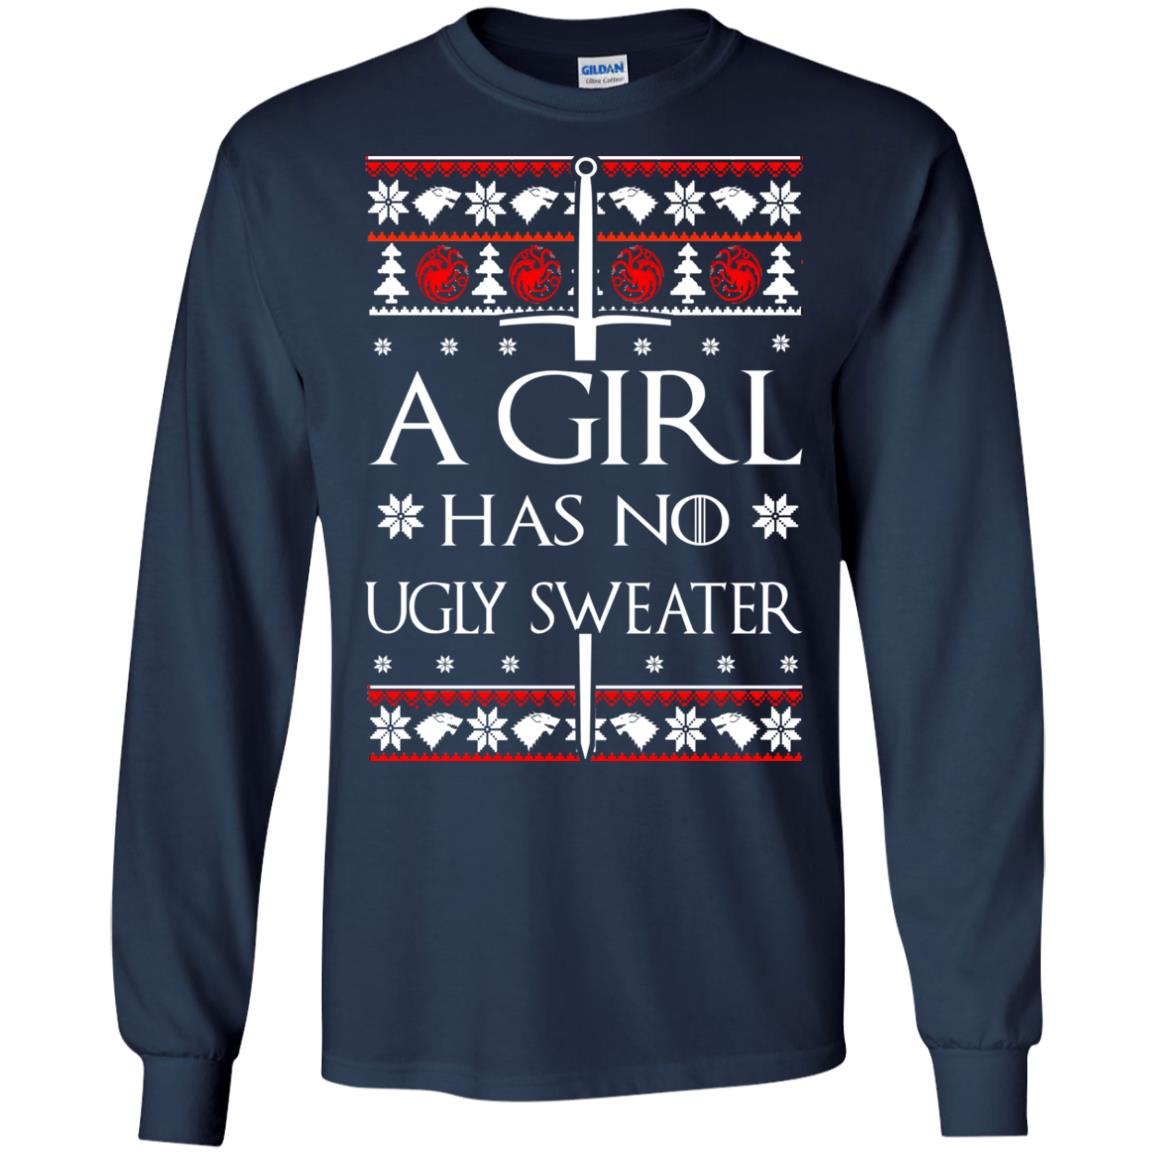 image 1501 - A Girl Has no Ugly Sweater, Shirt, Christmas Sweatshirt Game Of Thrones